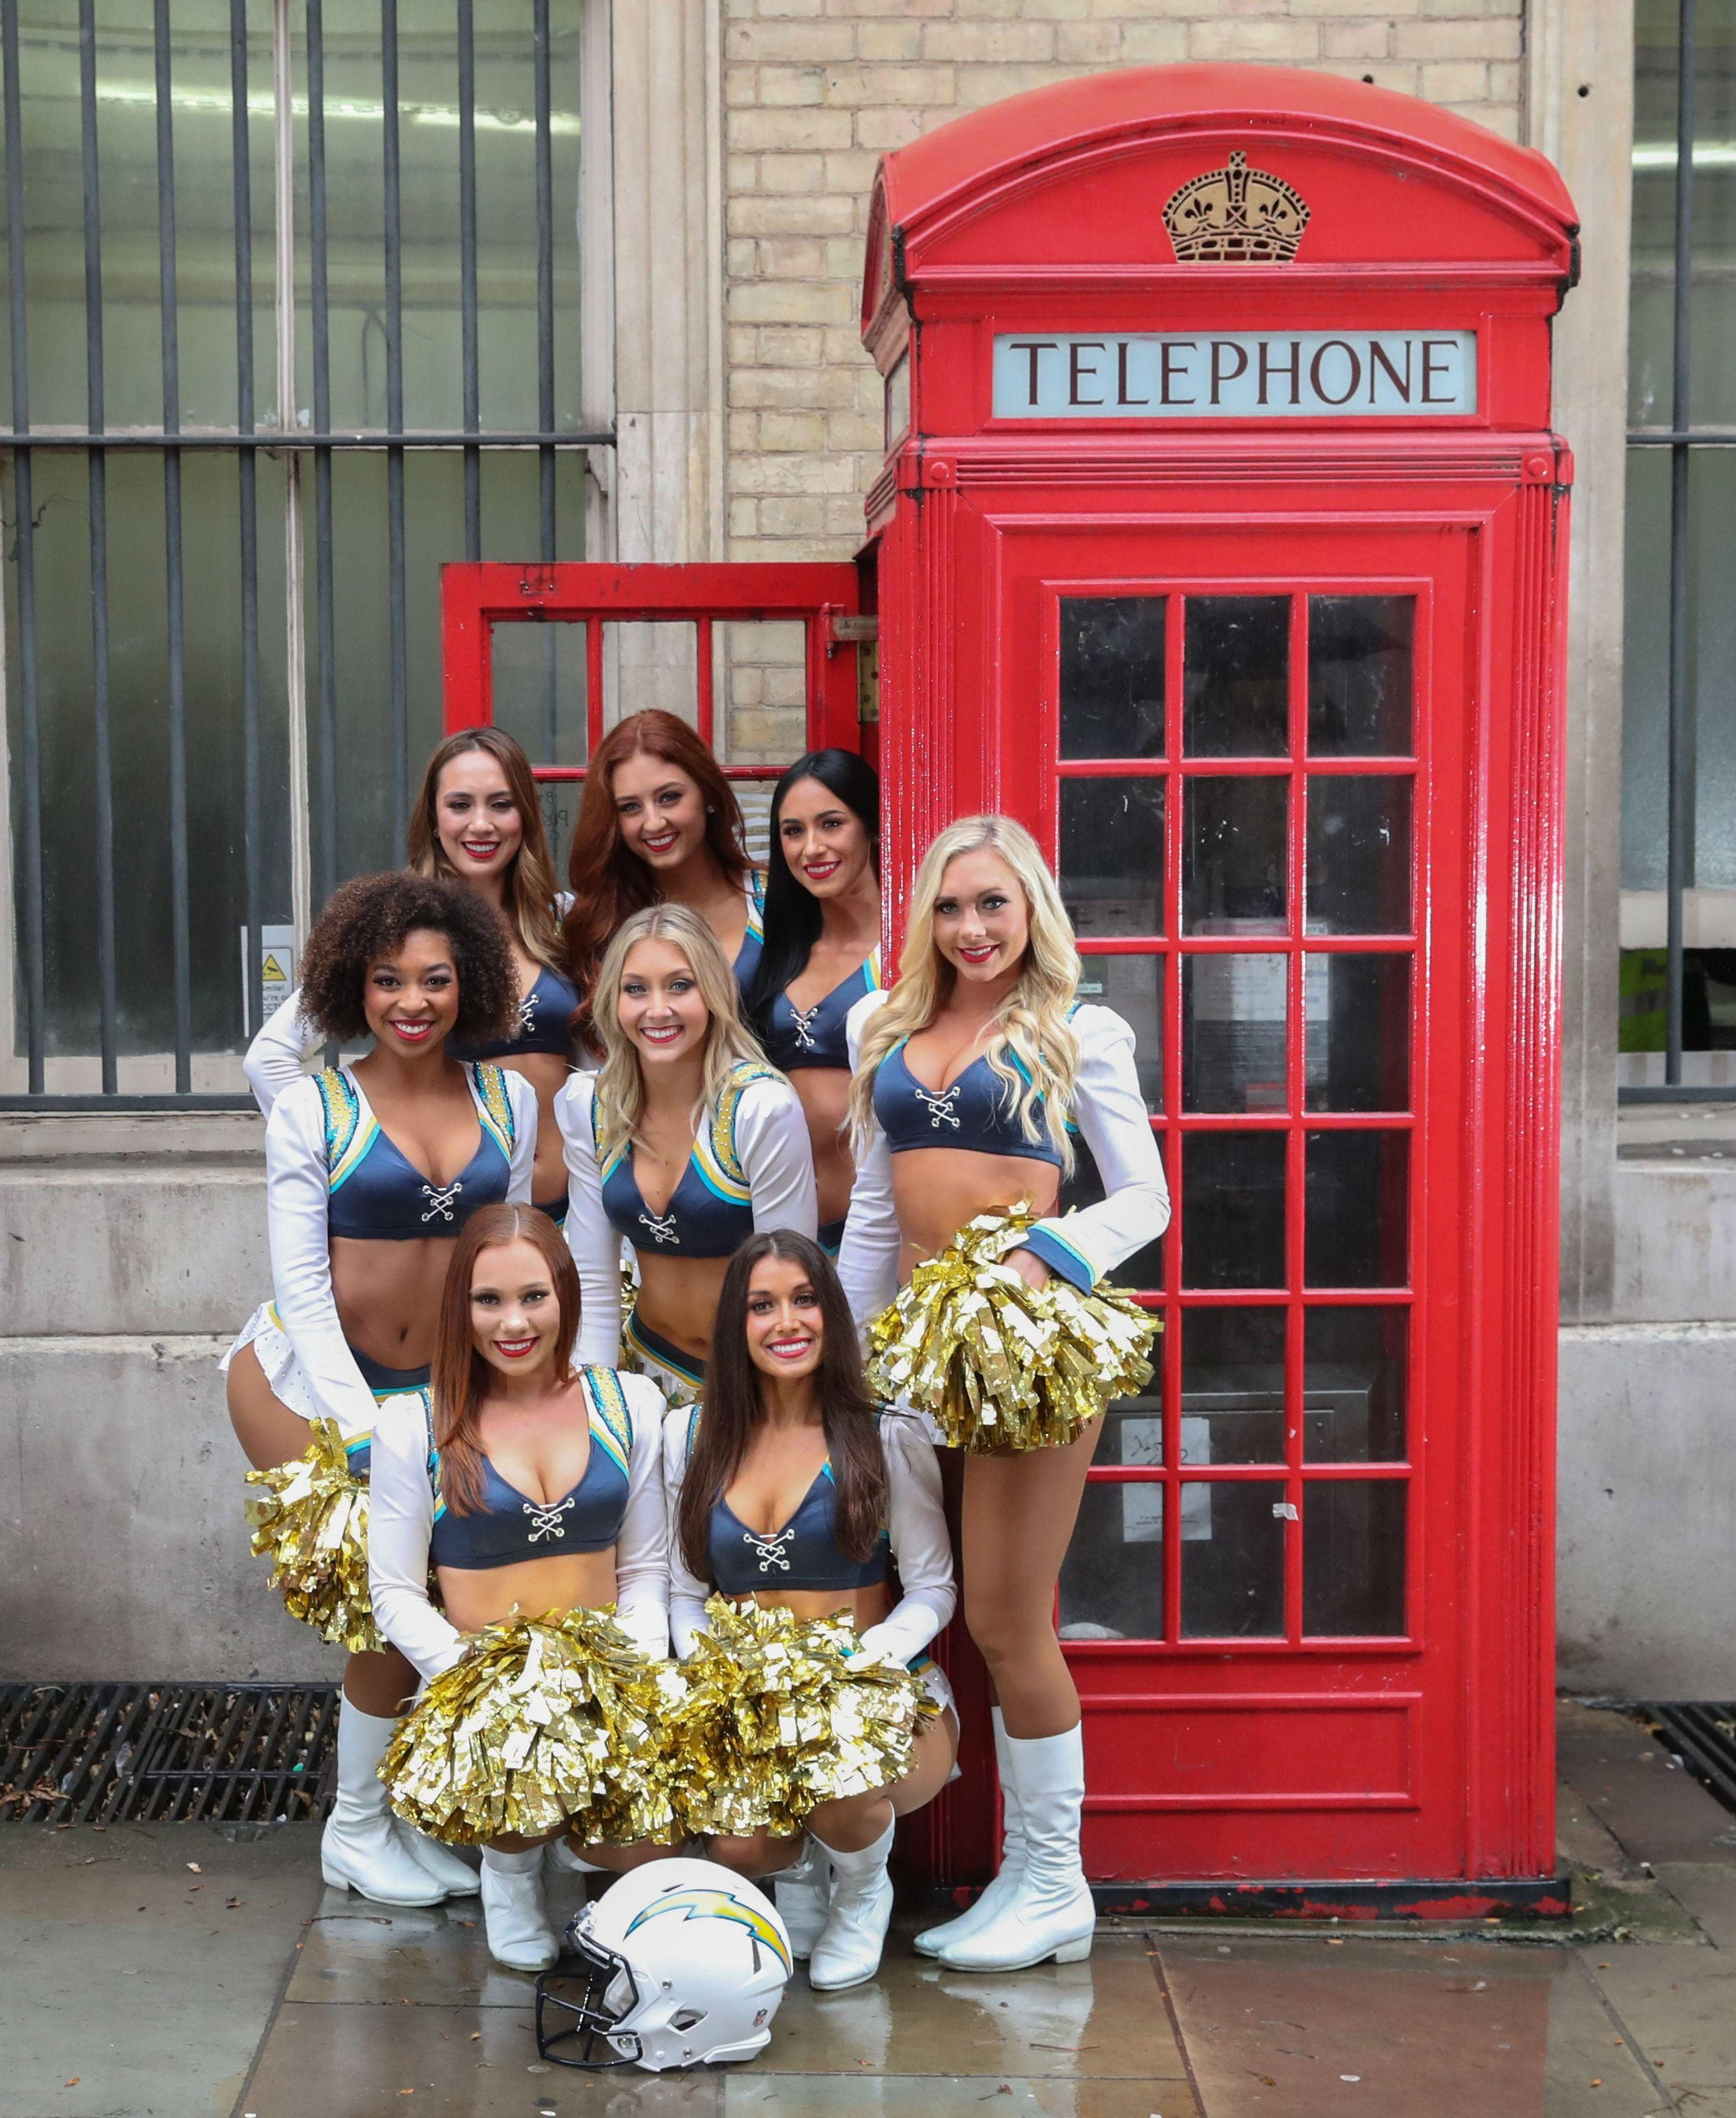 The Chargers' girls brought a little cheer to a grey, old London today